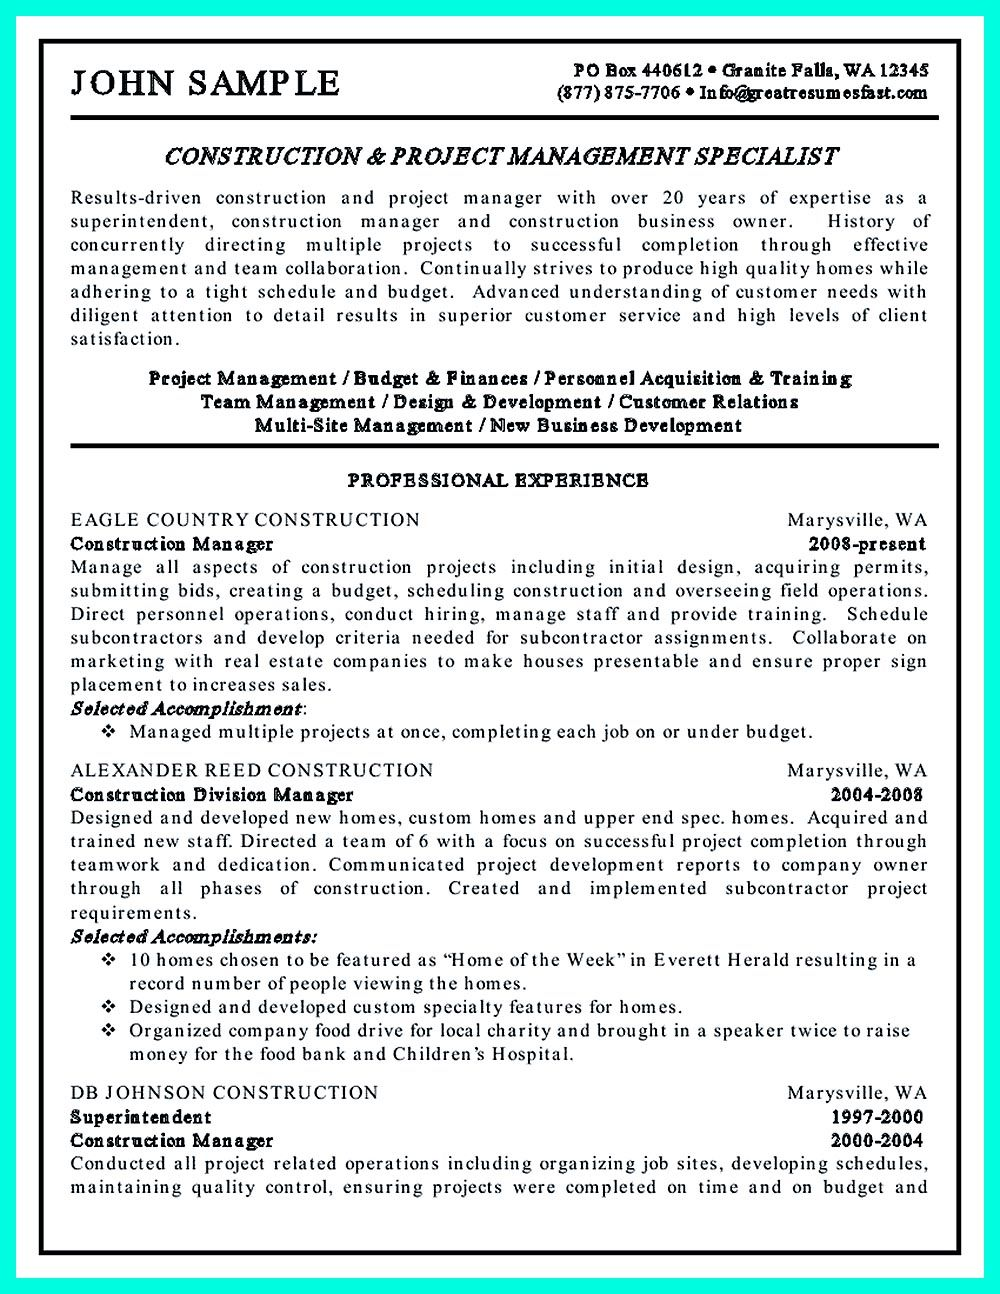 Project Management Resume Construction Management Resume Is Designed For A Professional Who